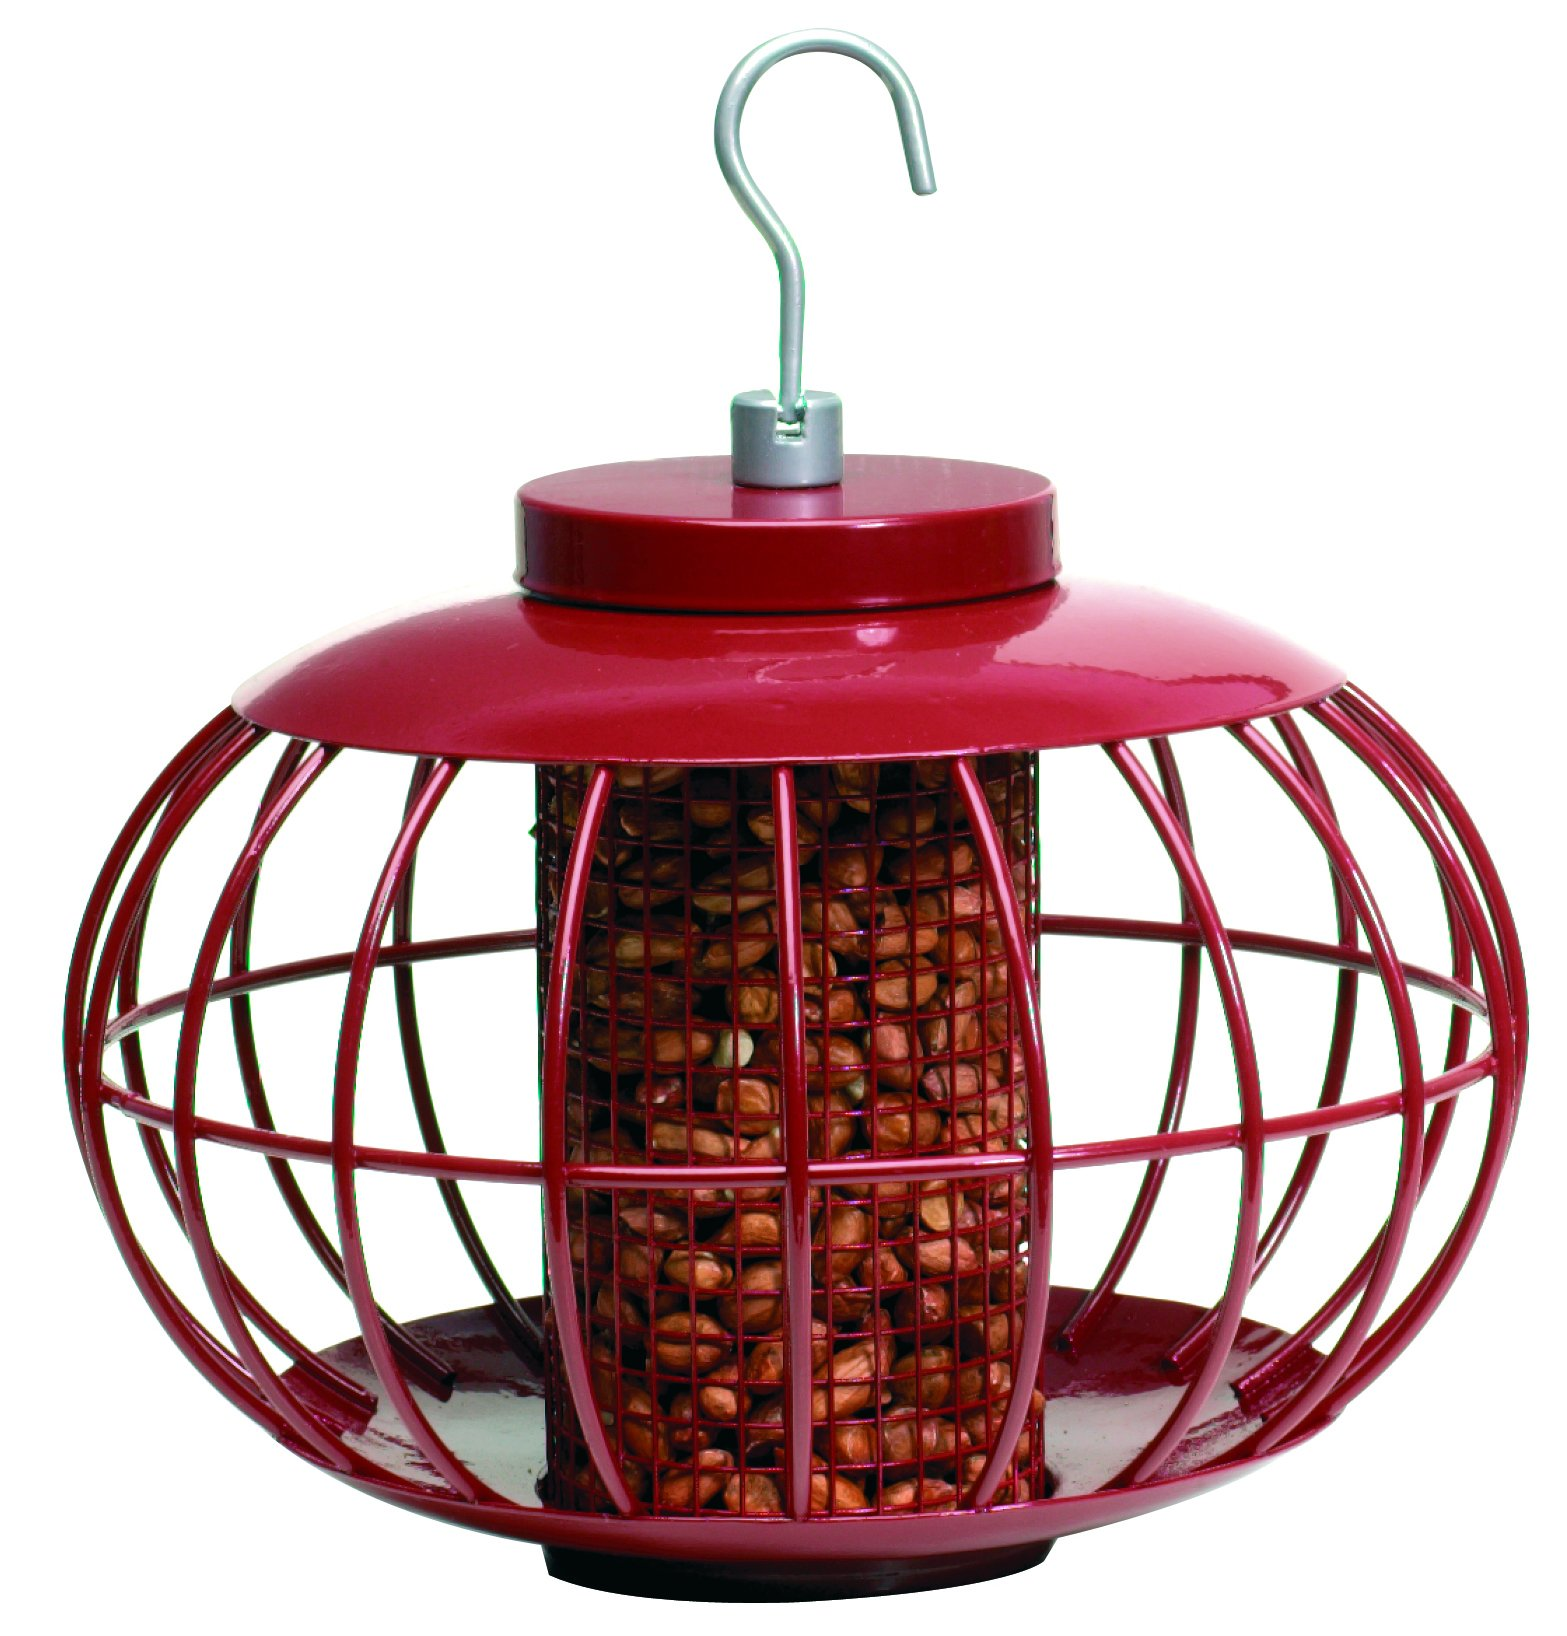 The Nuttery NT050 Classic Peanut/Sunflower Seed Feeder by The Nuttery